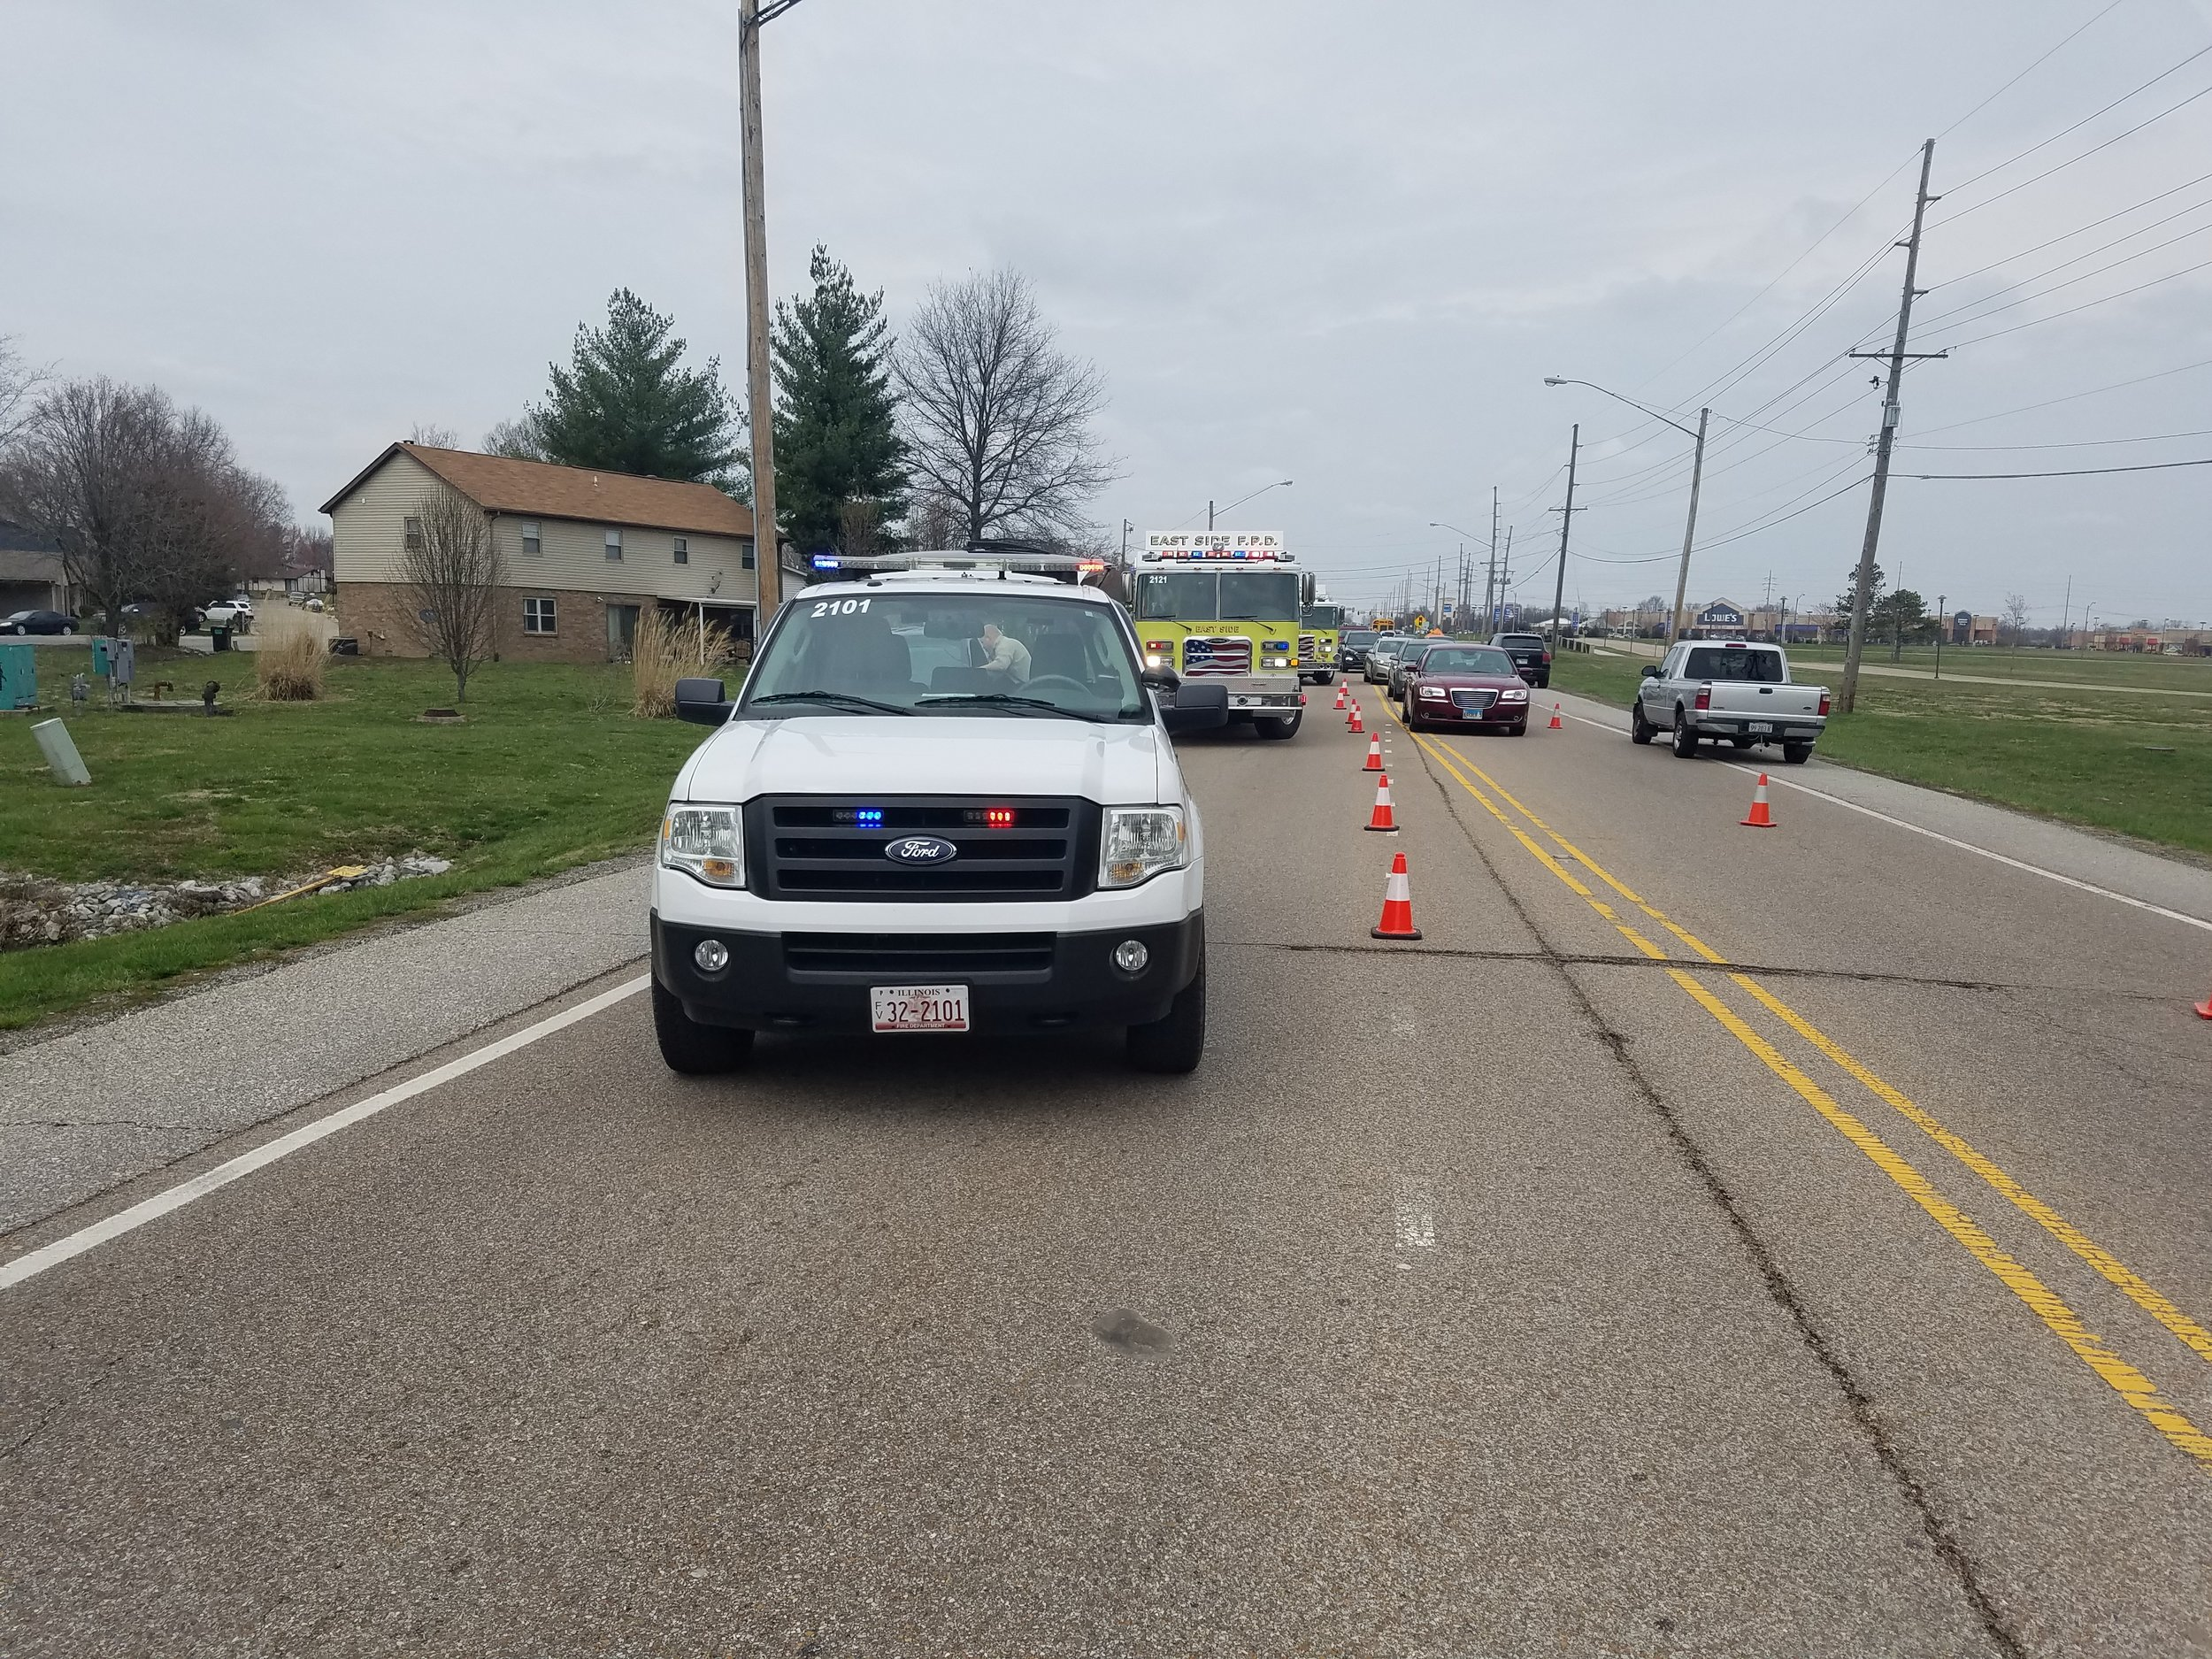 On 03/29/19, East Side responded for a vehicle accident with injuries. East Side assisted with traffic control.